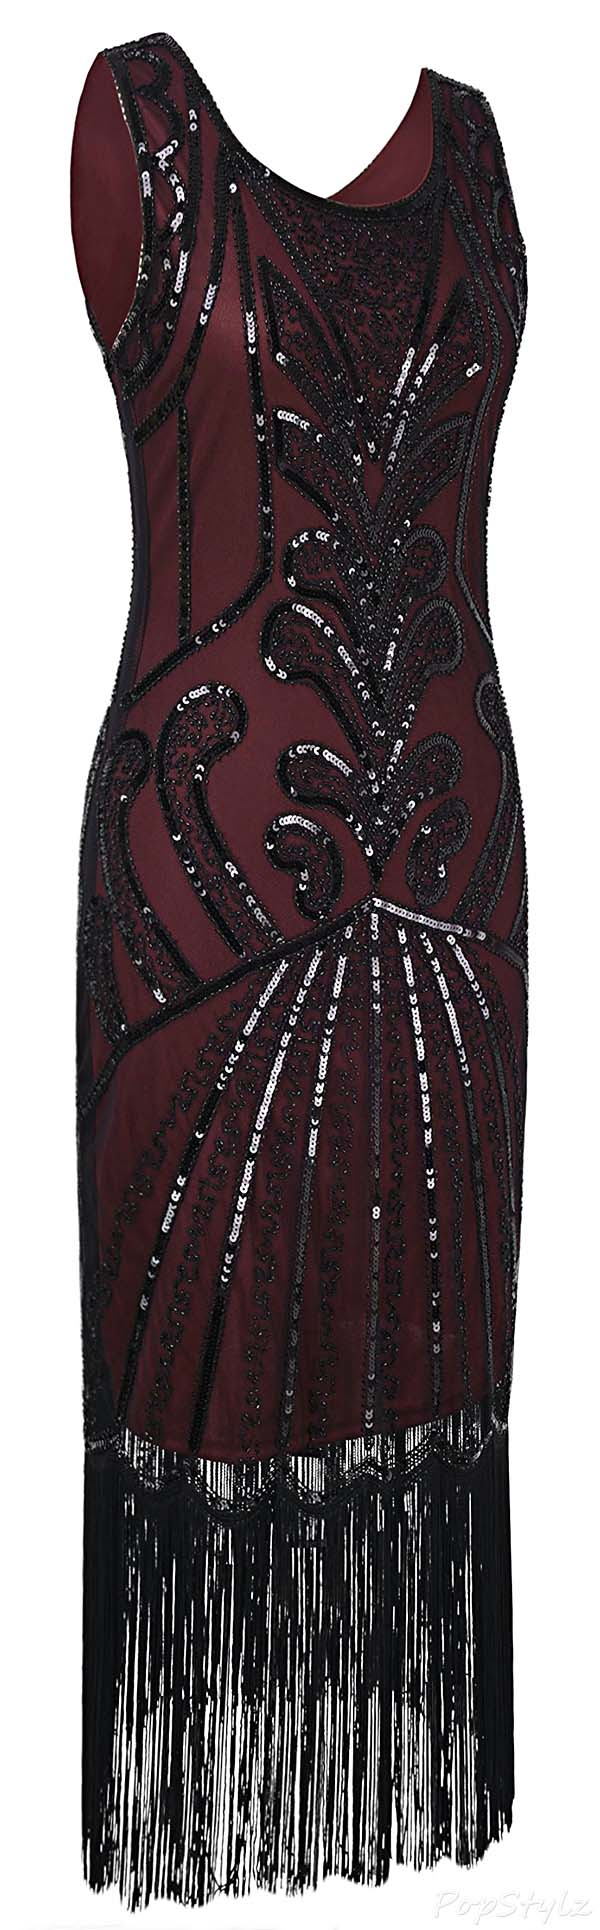 PrettyGuide 1920s Vintage Flapper Dress